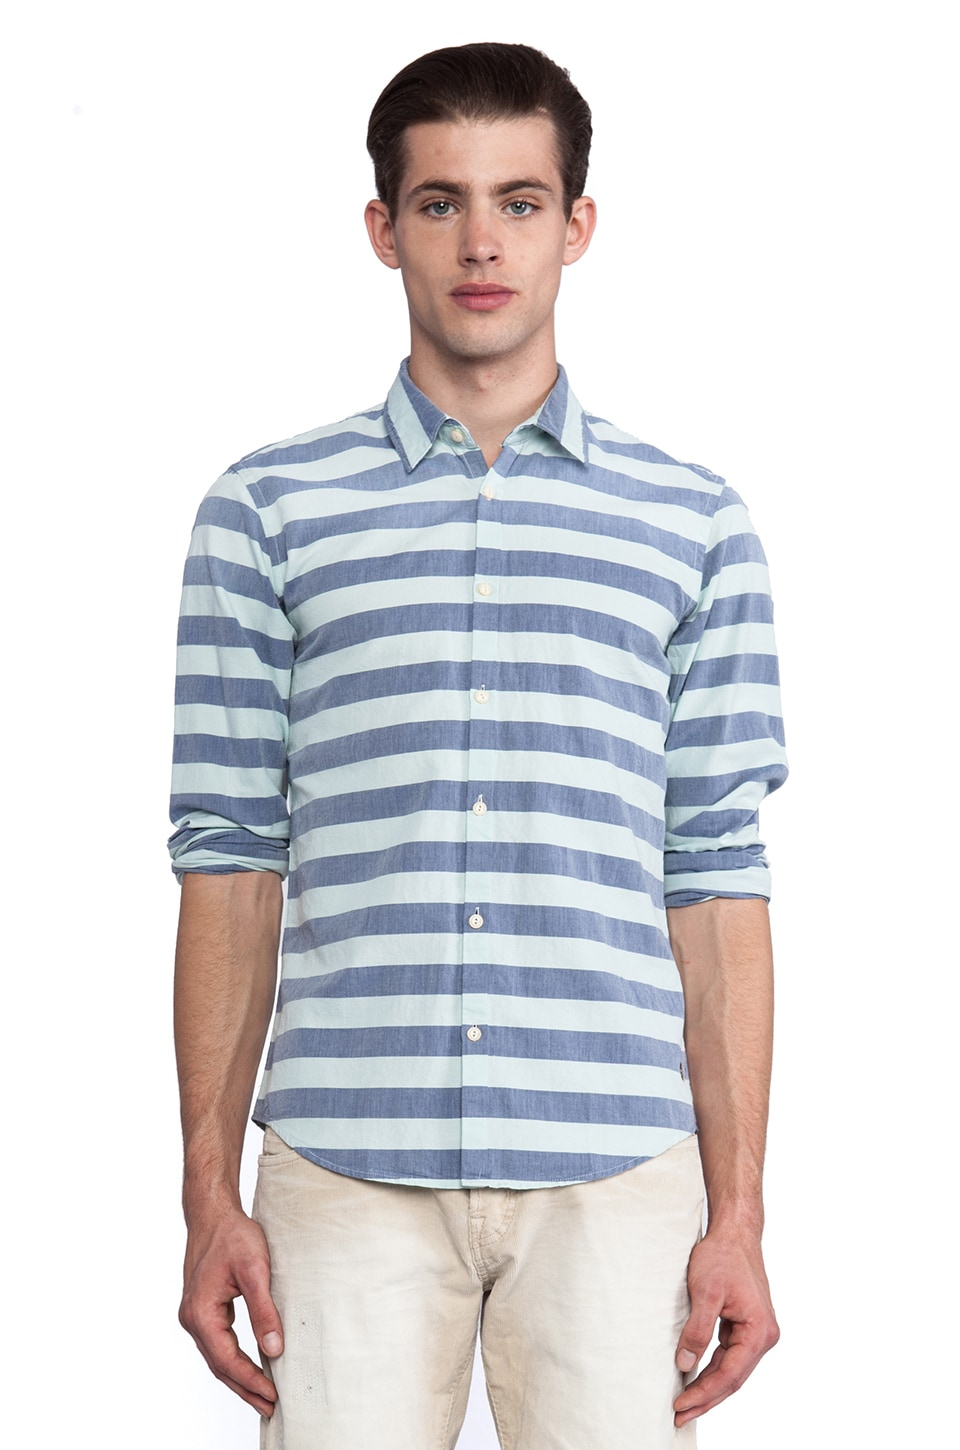 Scotch & Soda Lightweight Oxford Shirt in Solid & Dessins in Blue & Spearmint